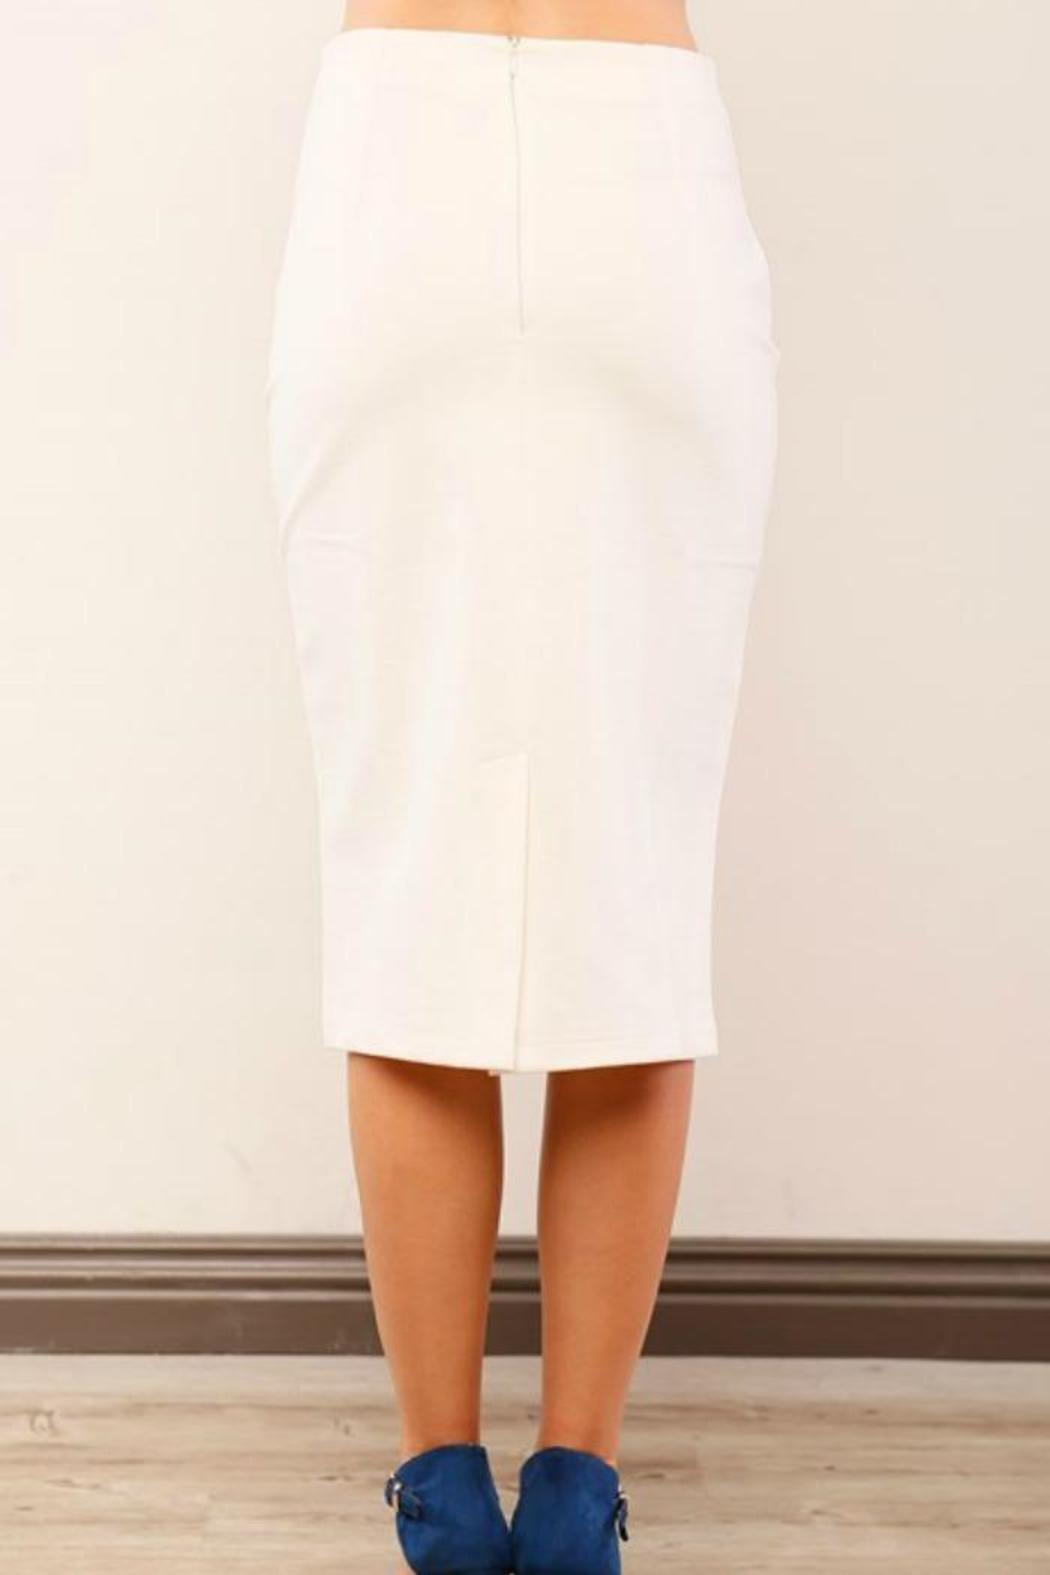 Lumiere Cream Pencil Skirt from Washington by Lika Love — Shoptiques